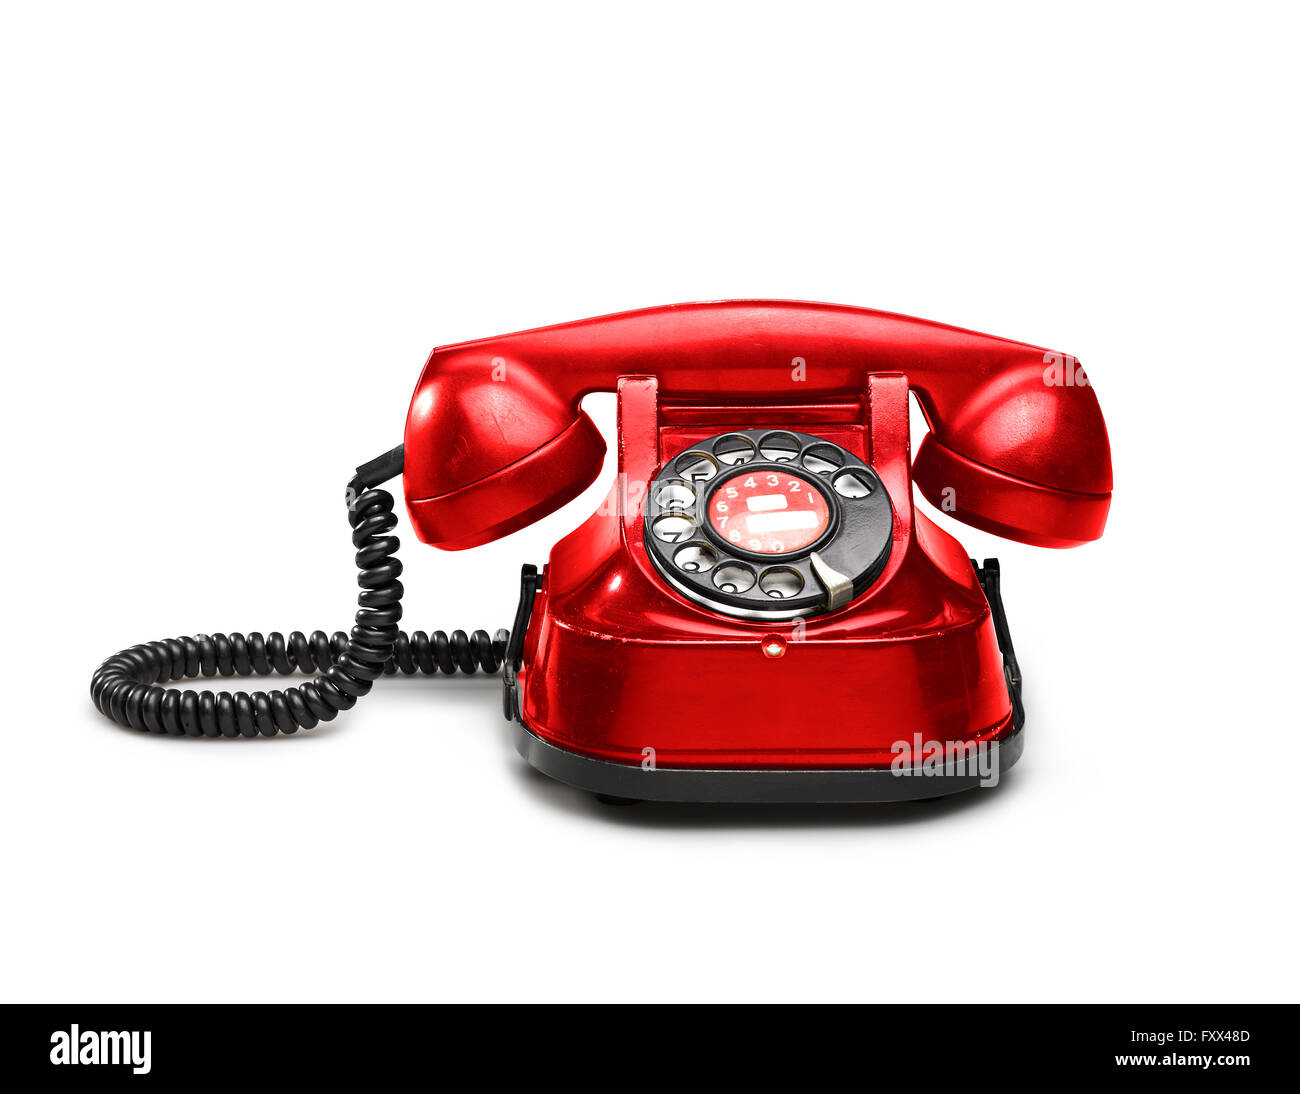 An old red telephon with rotary dial - clipping path - Stock Image